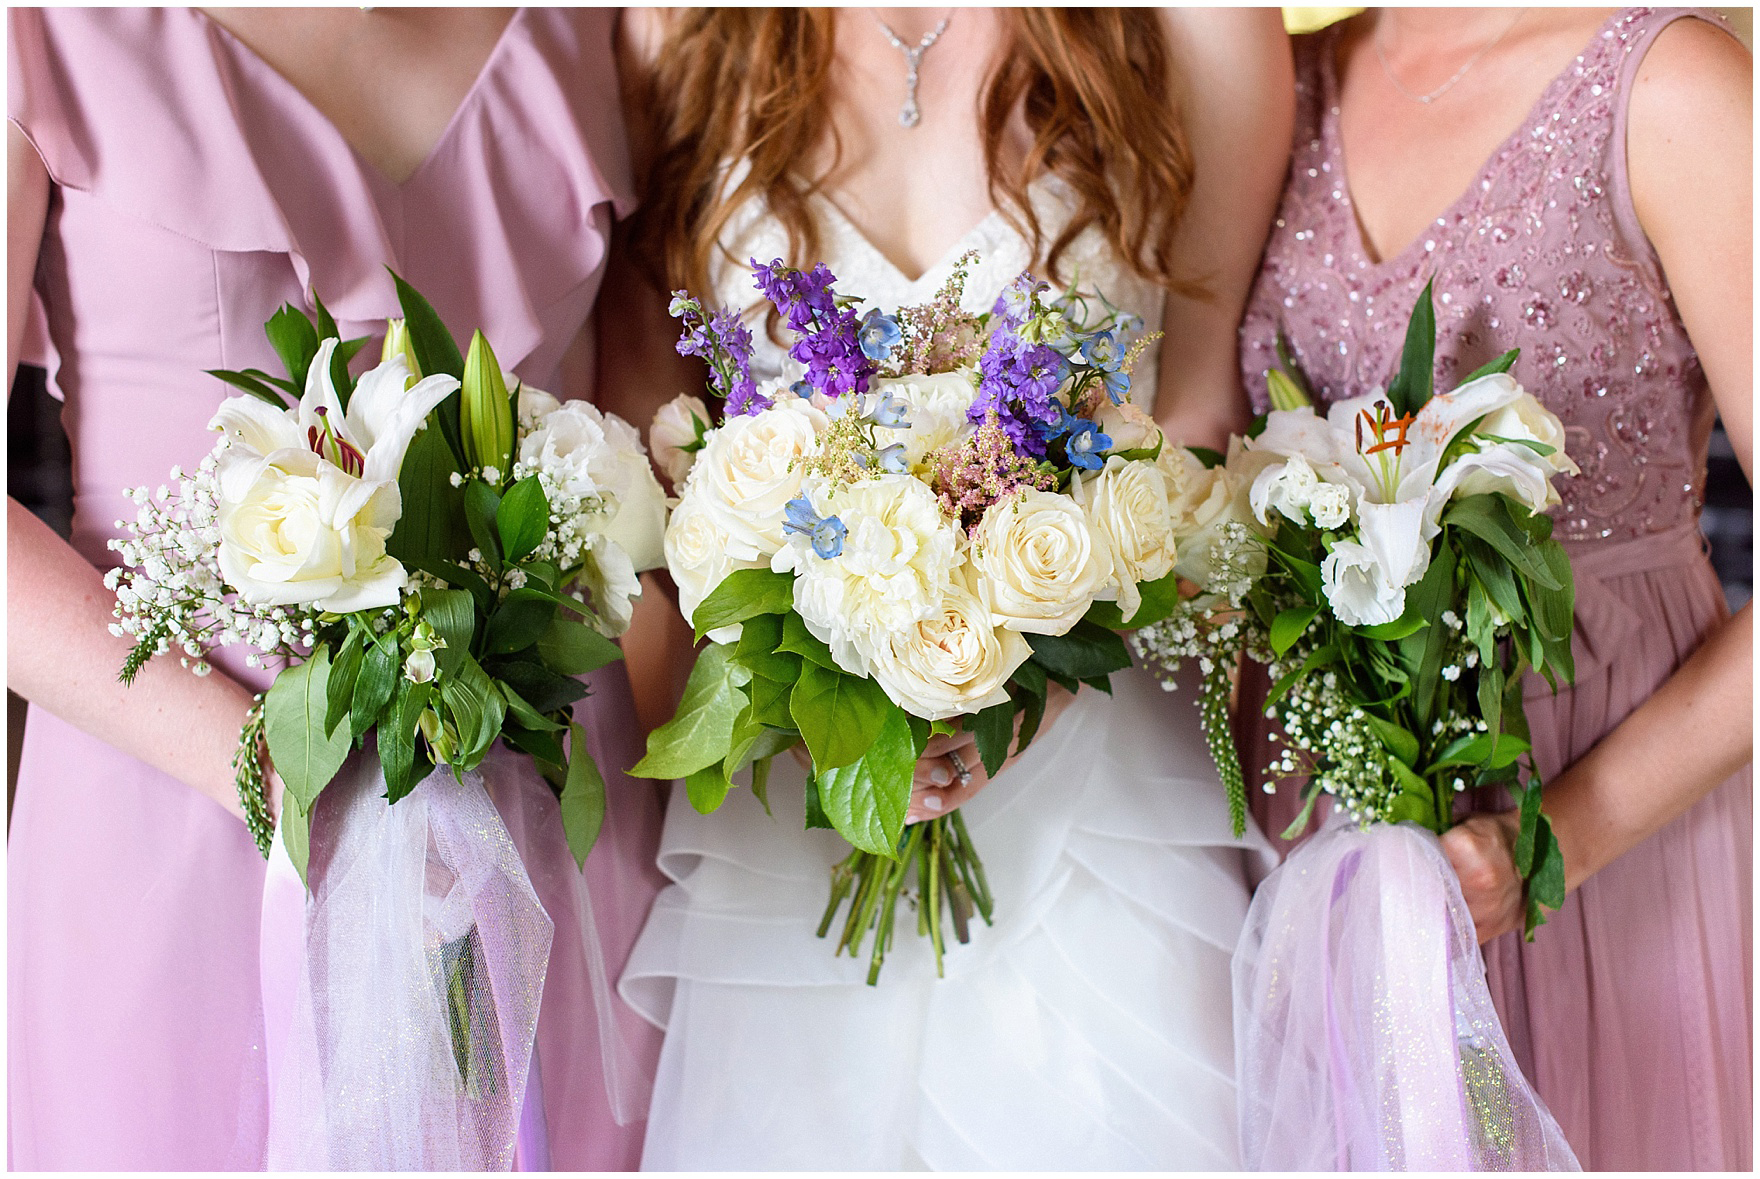 Purple and blue bride's and bridesmaids bouquets for a University of Notre Dame wedding.